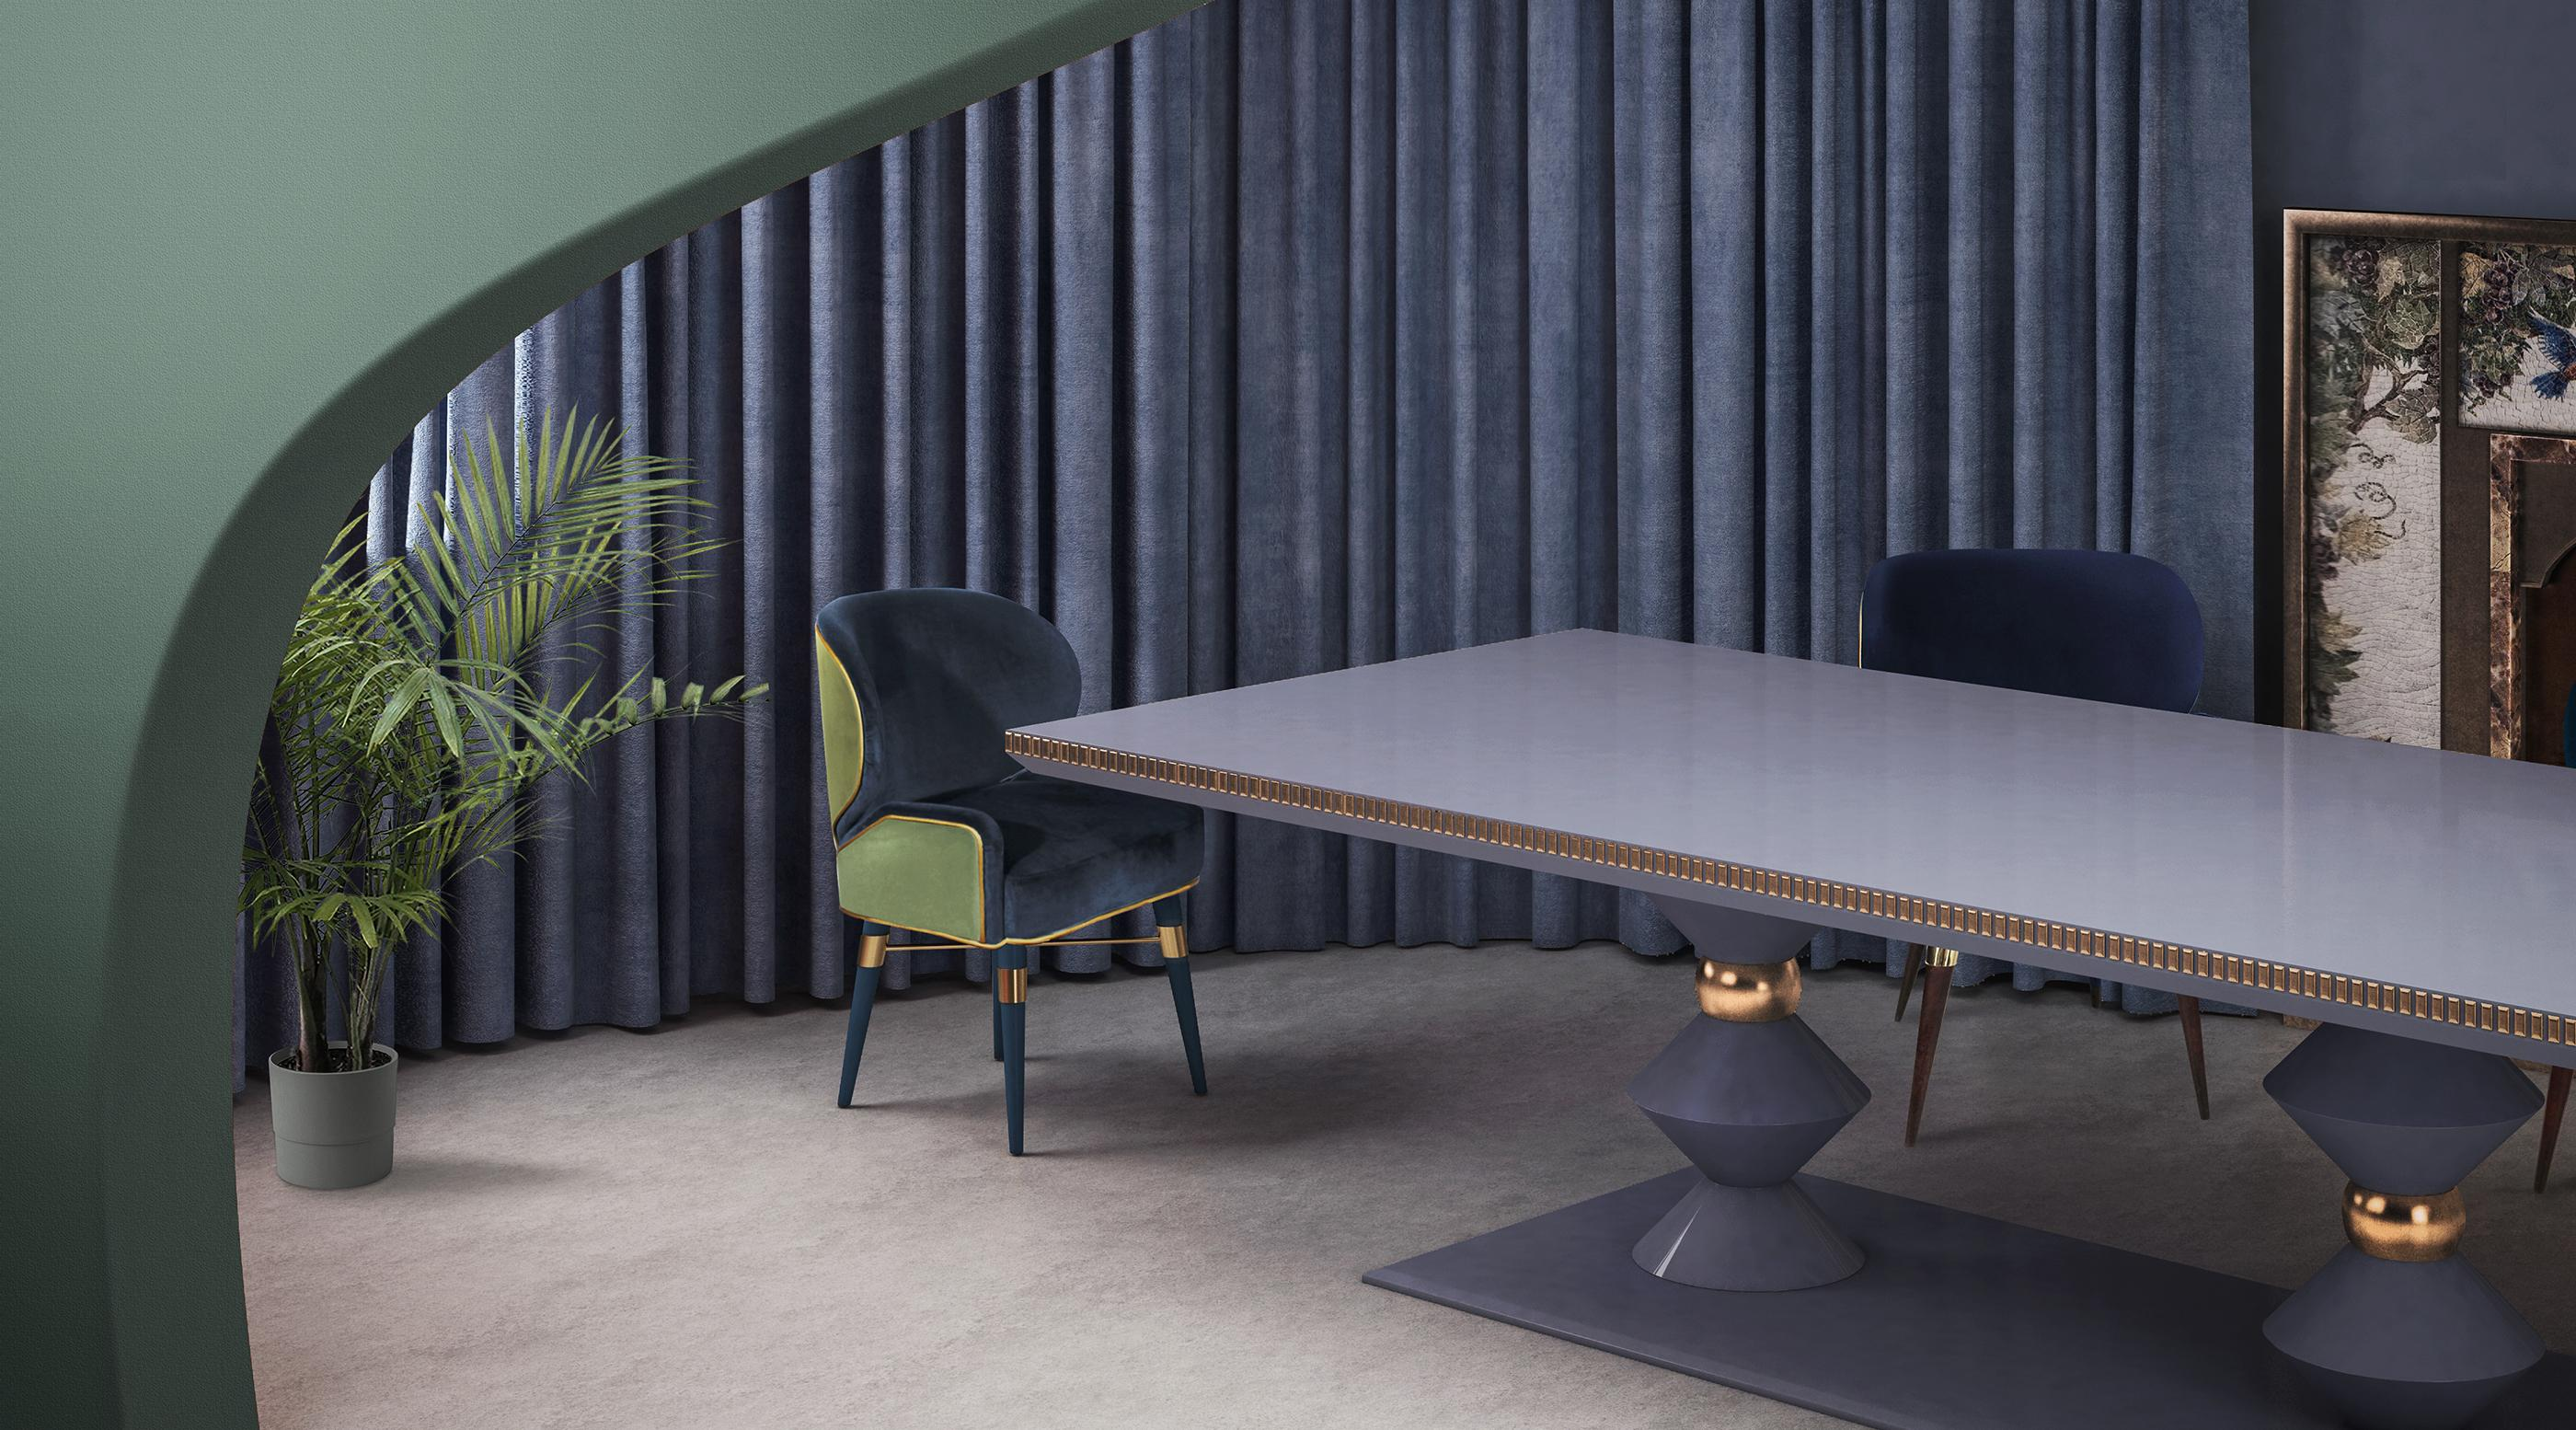 Louis I Mid-Century Dining Chair in green and blue velvet